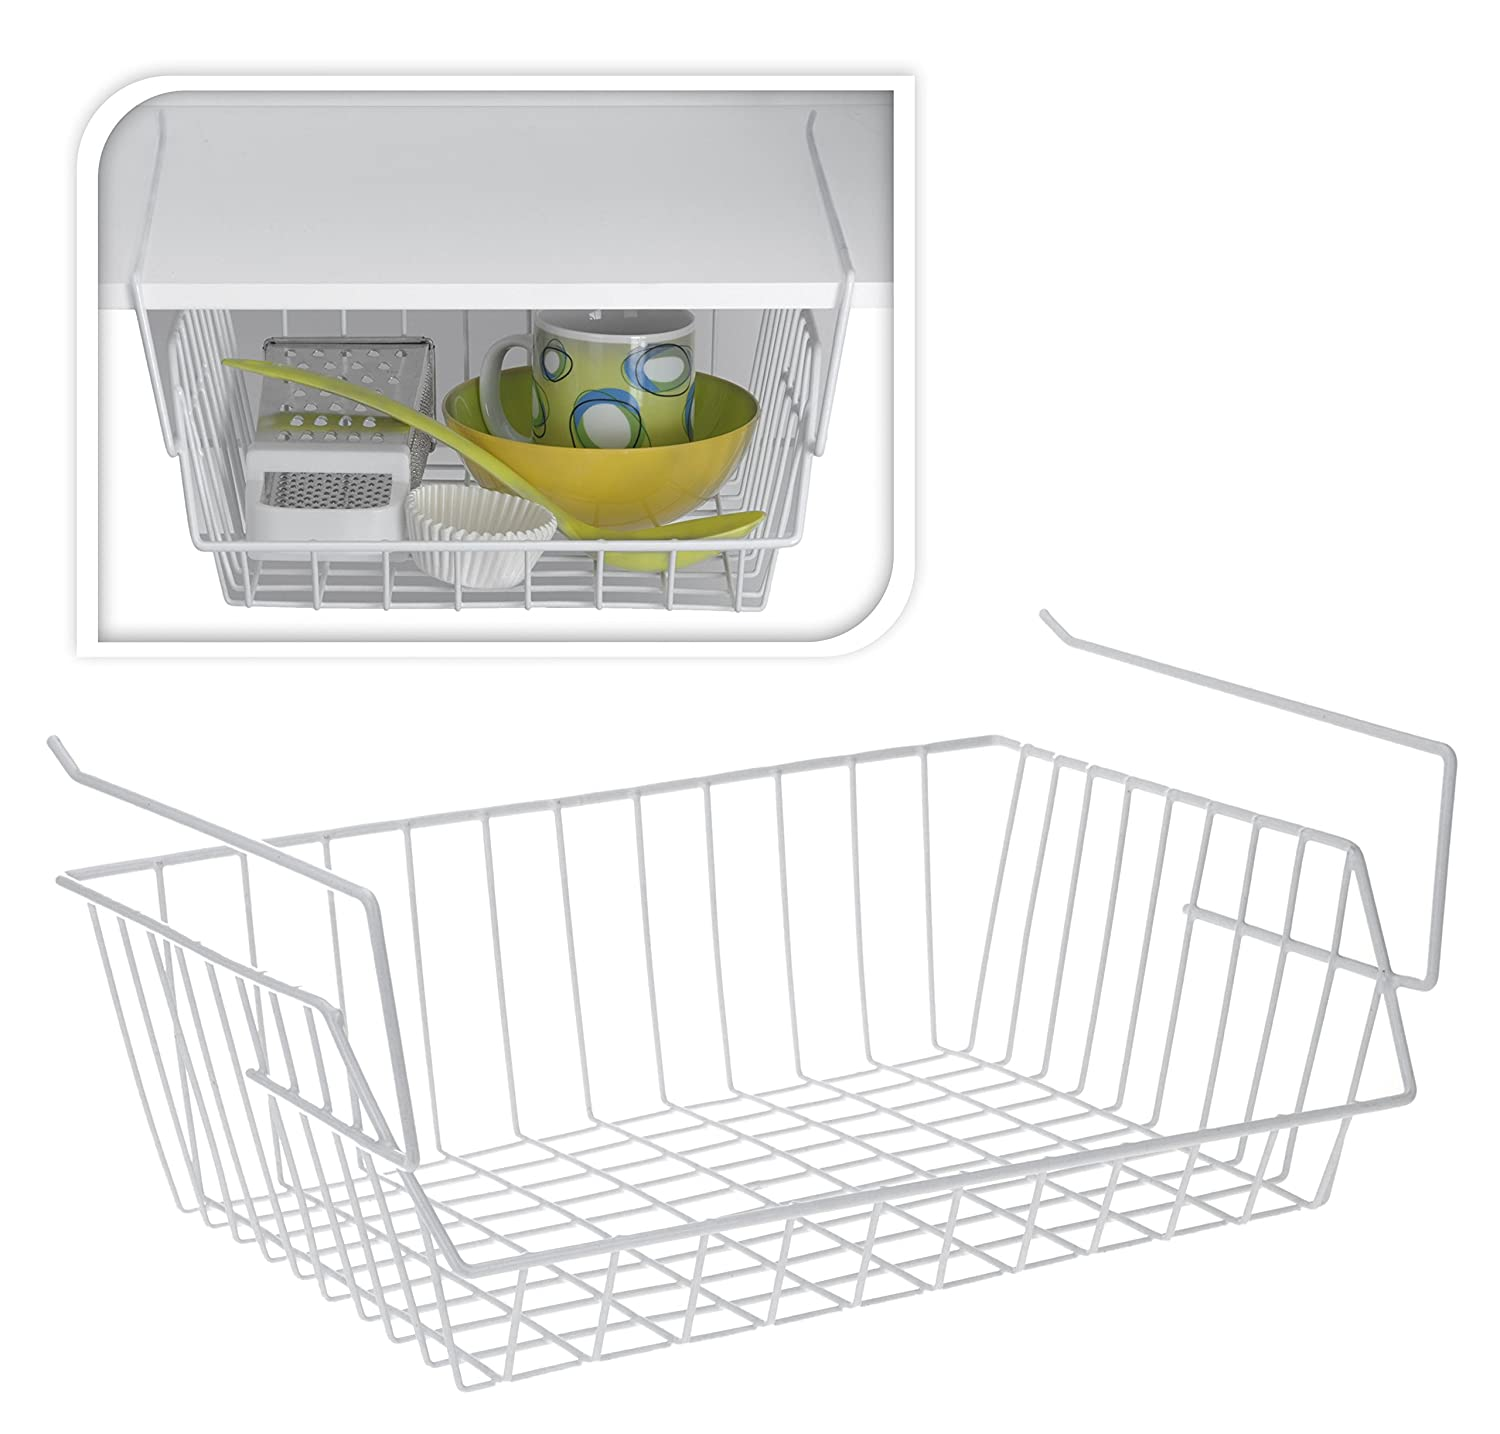 Large White under Shelf Storage Basket Rack Holder Kitchen Bin Bathroom Organizer Space Saving(SI-K1010) by FunkyBuys